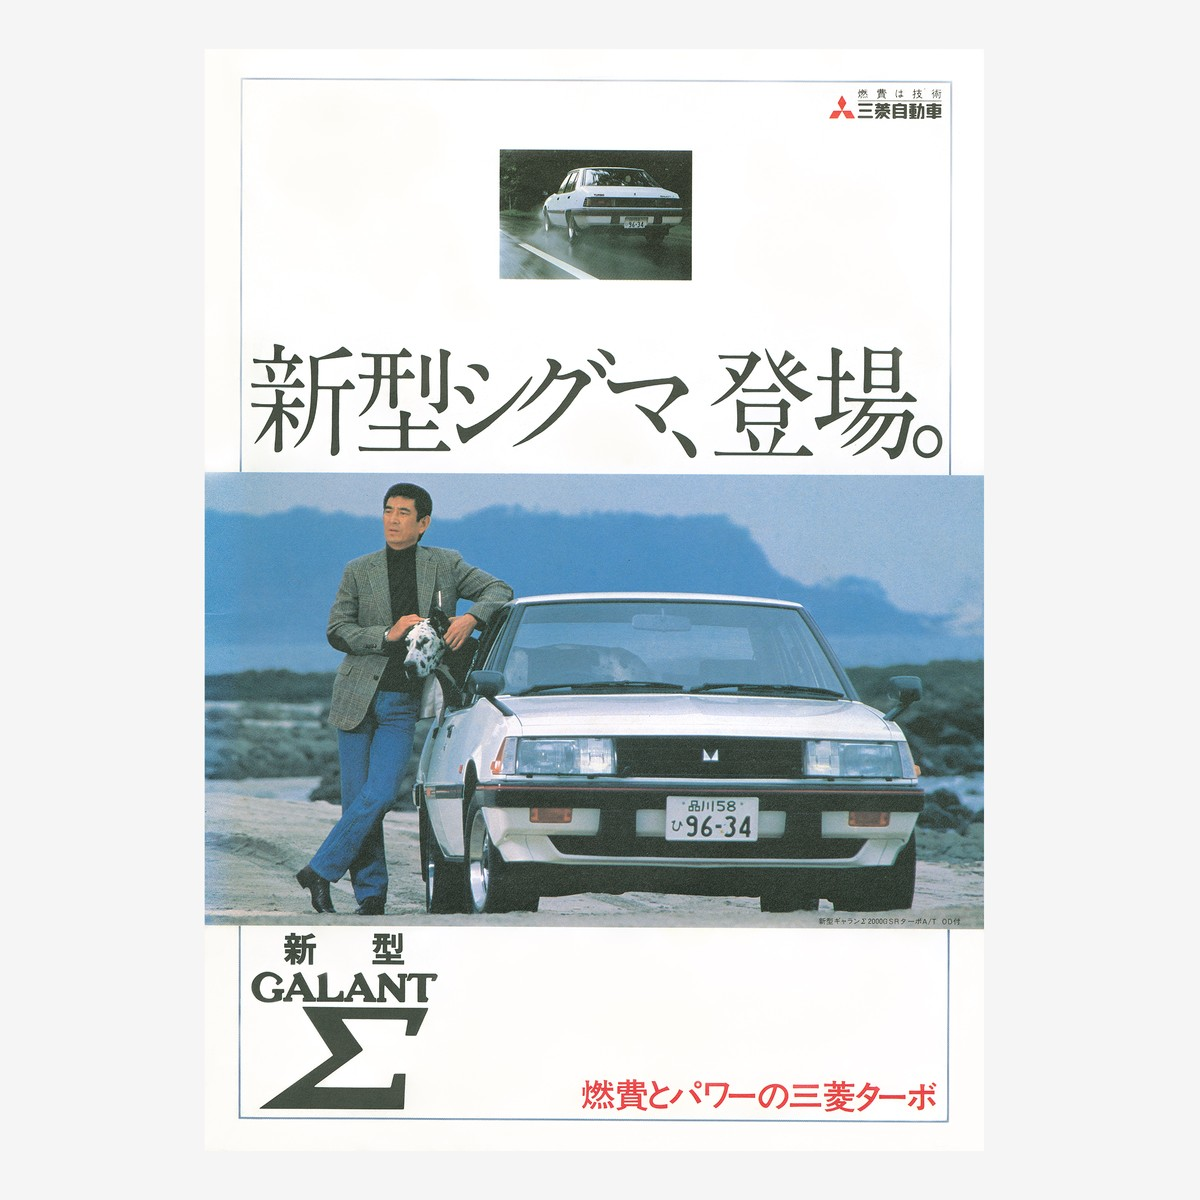 Photo of Mitsubishi Galant Vintage Advertising Poster